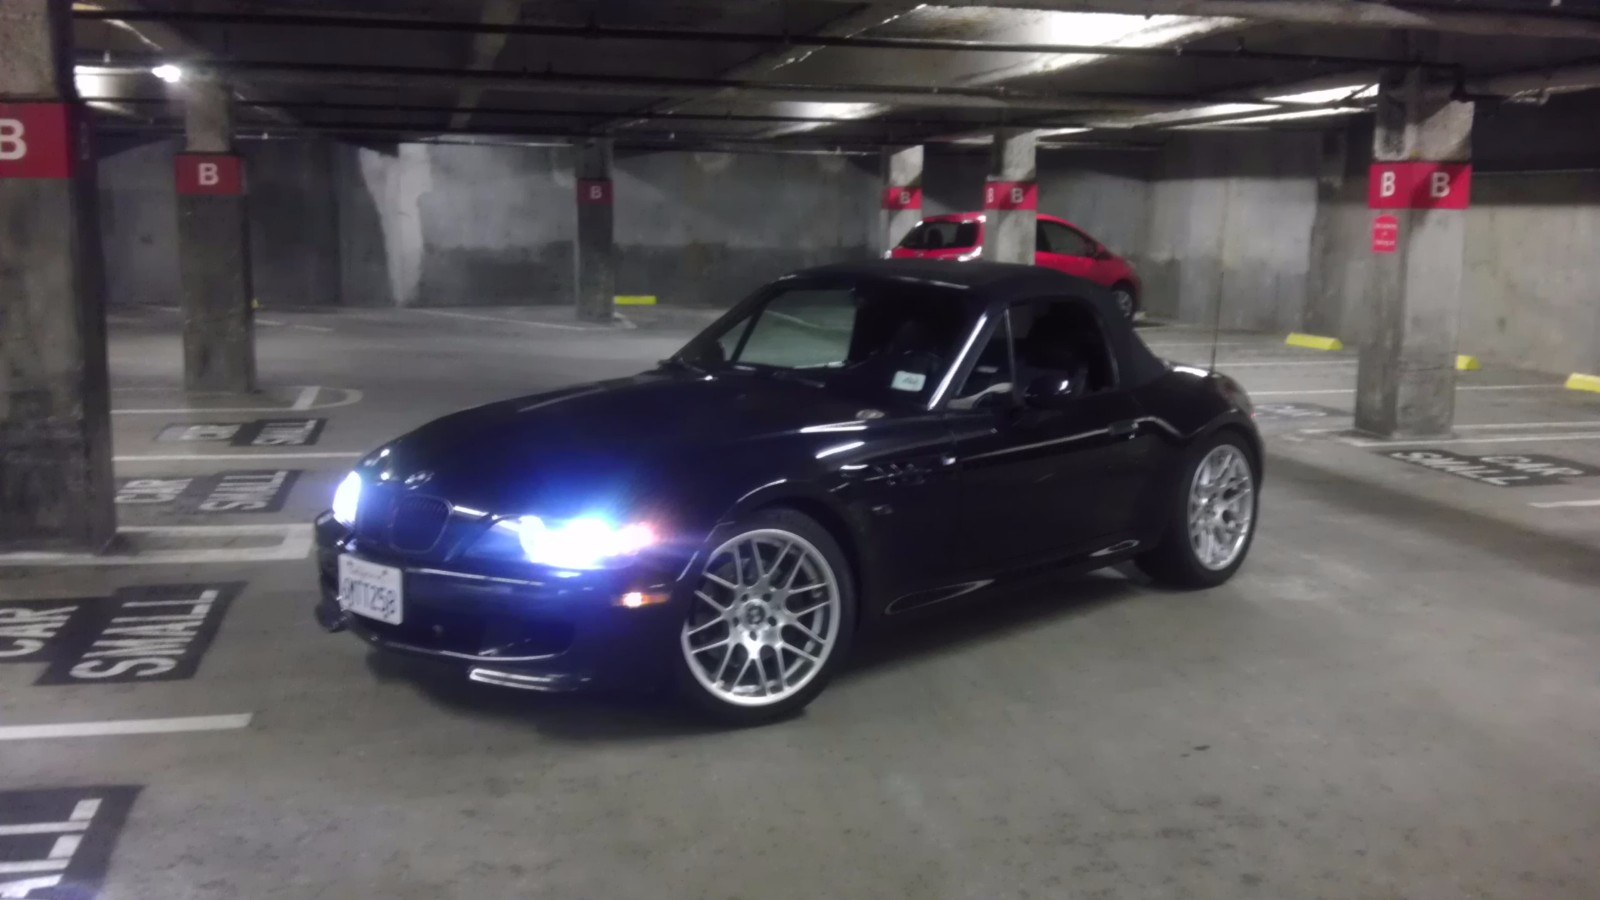 1998 BMW M Roadster in Cosmos Black Metallic over Other